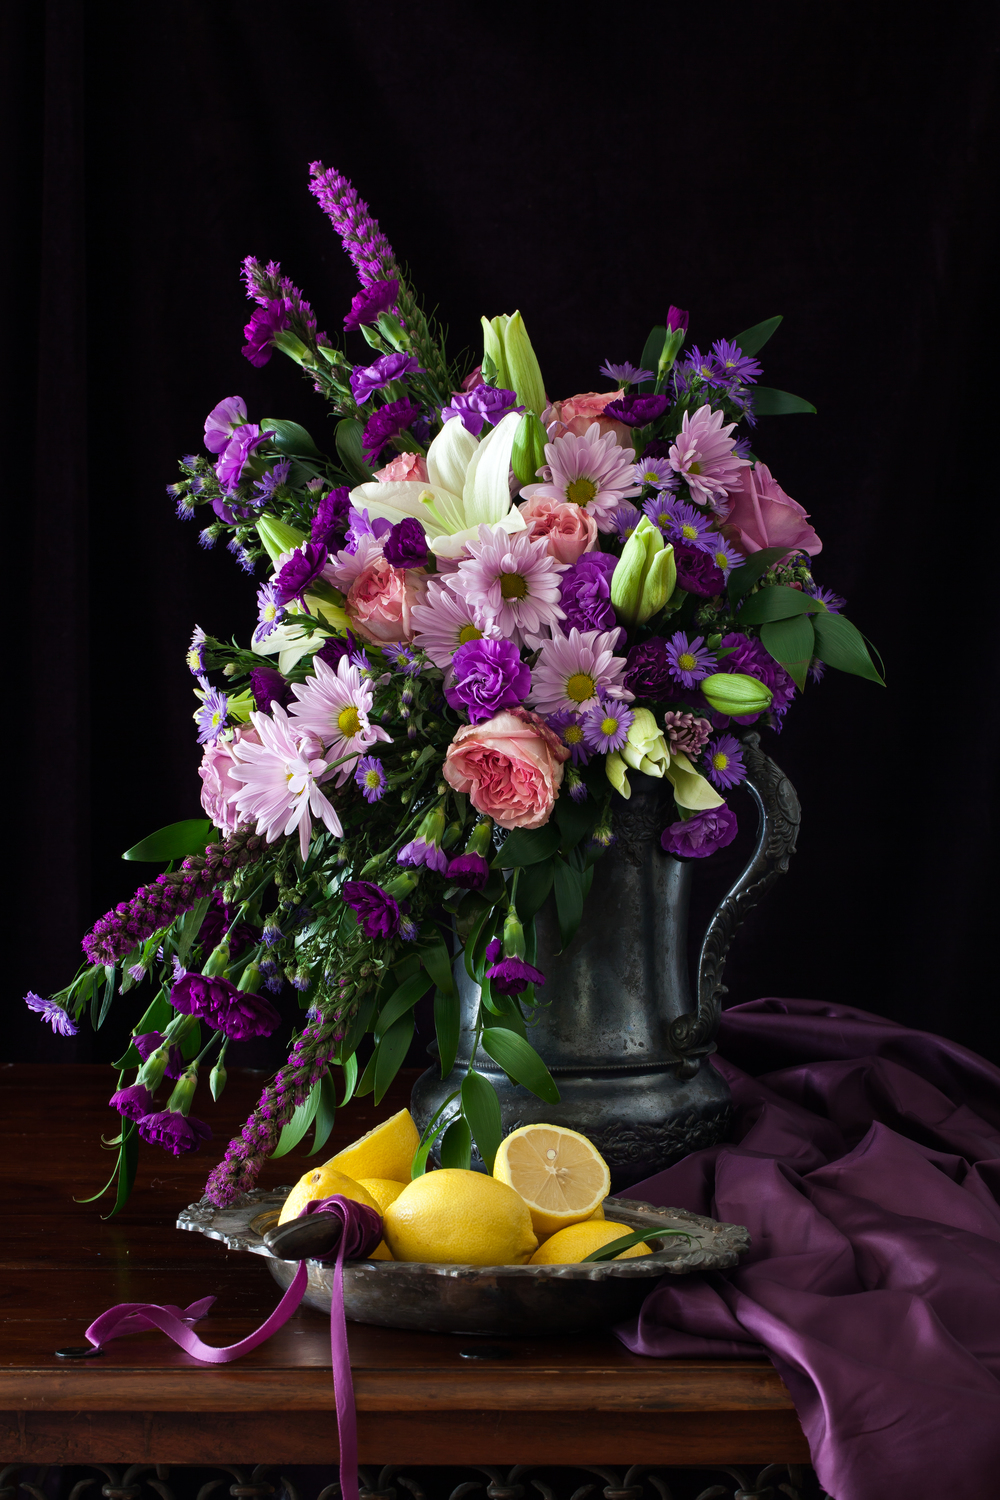 Still Life With Purple Flowers & Lemons 2016